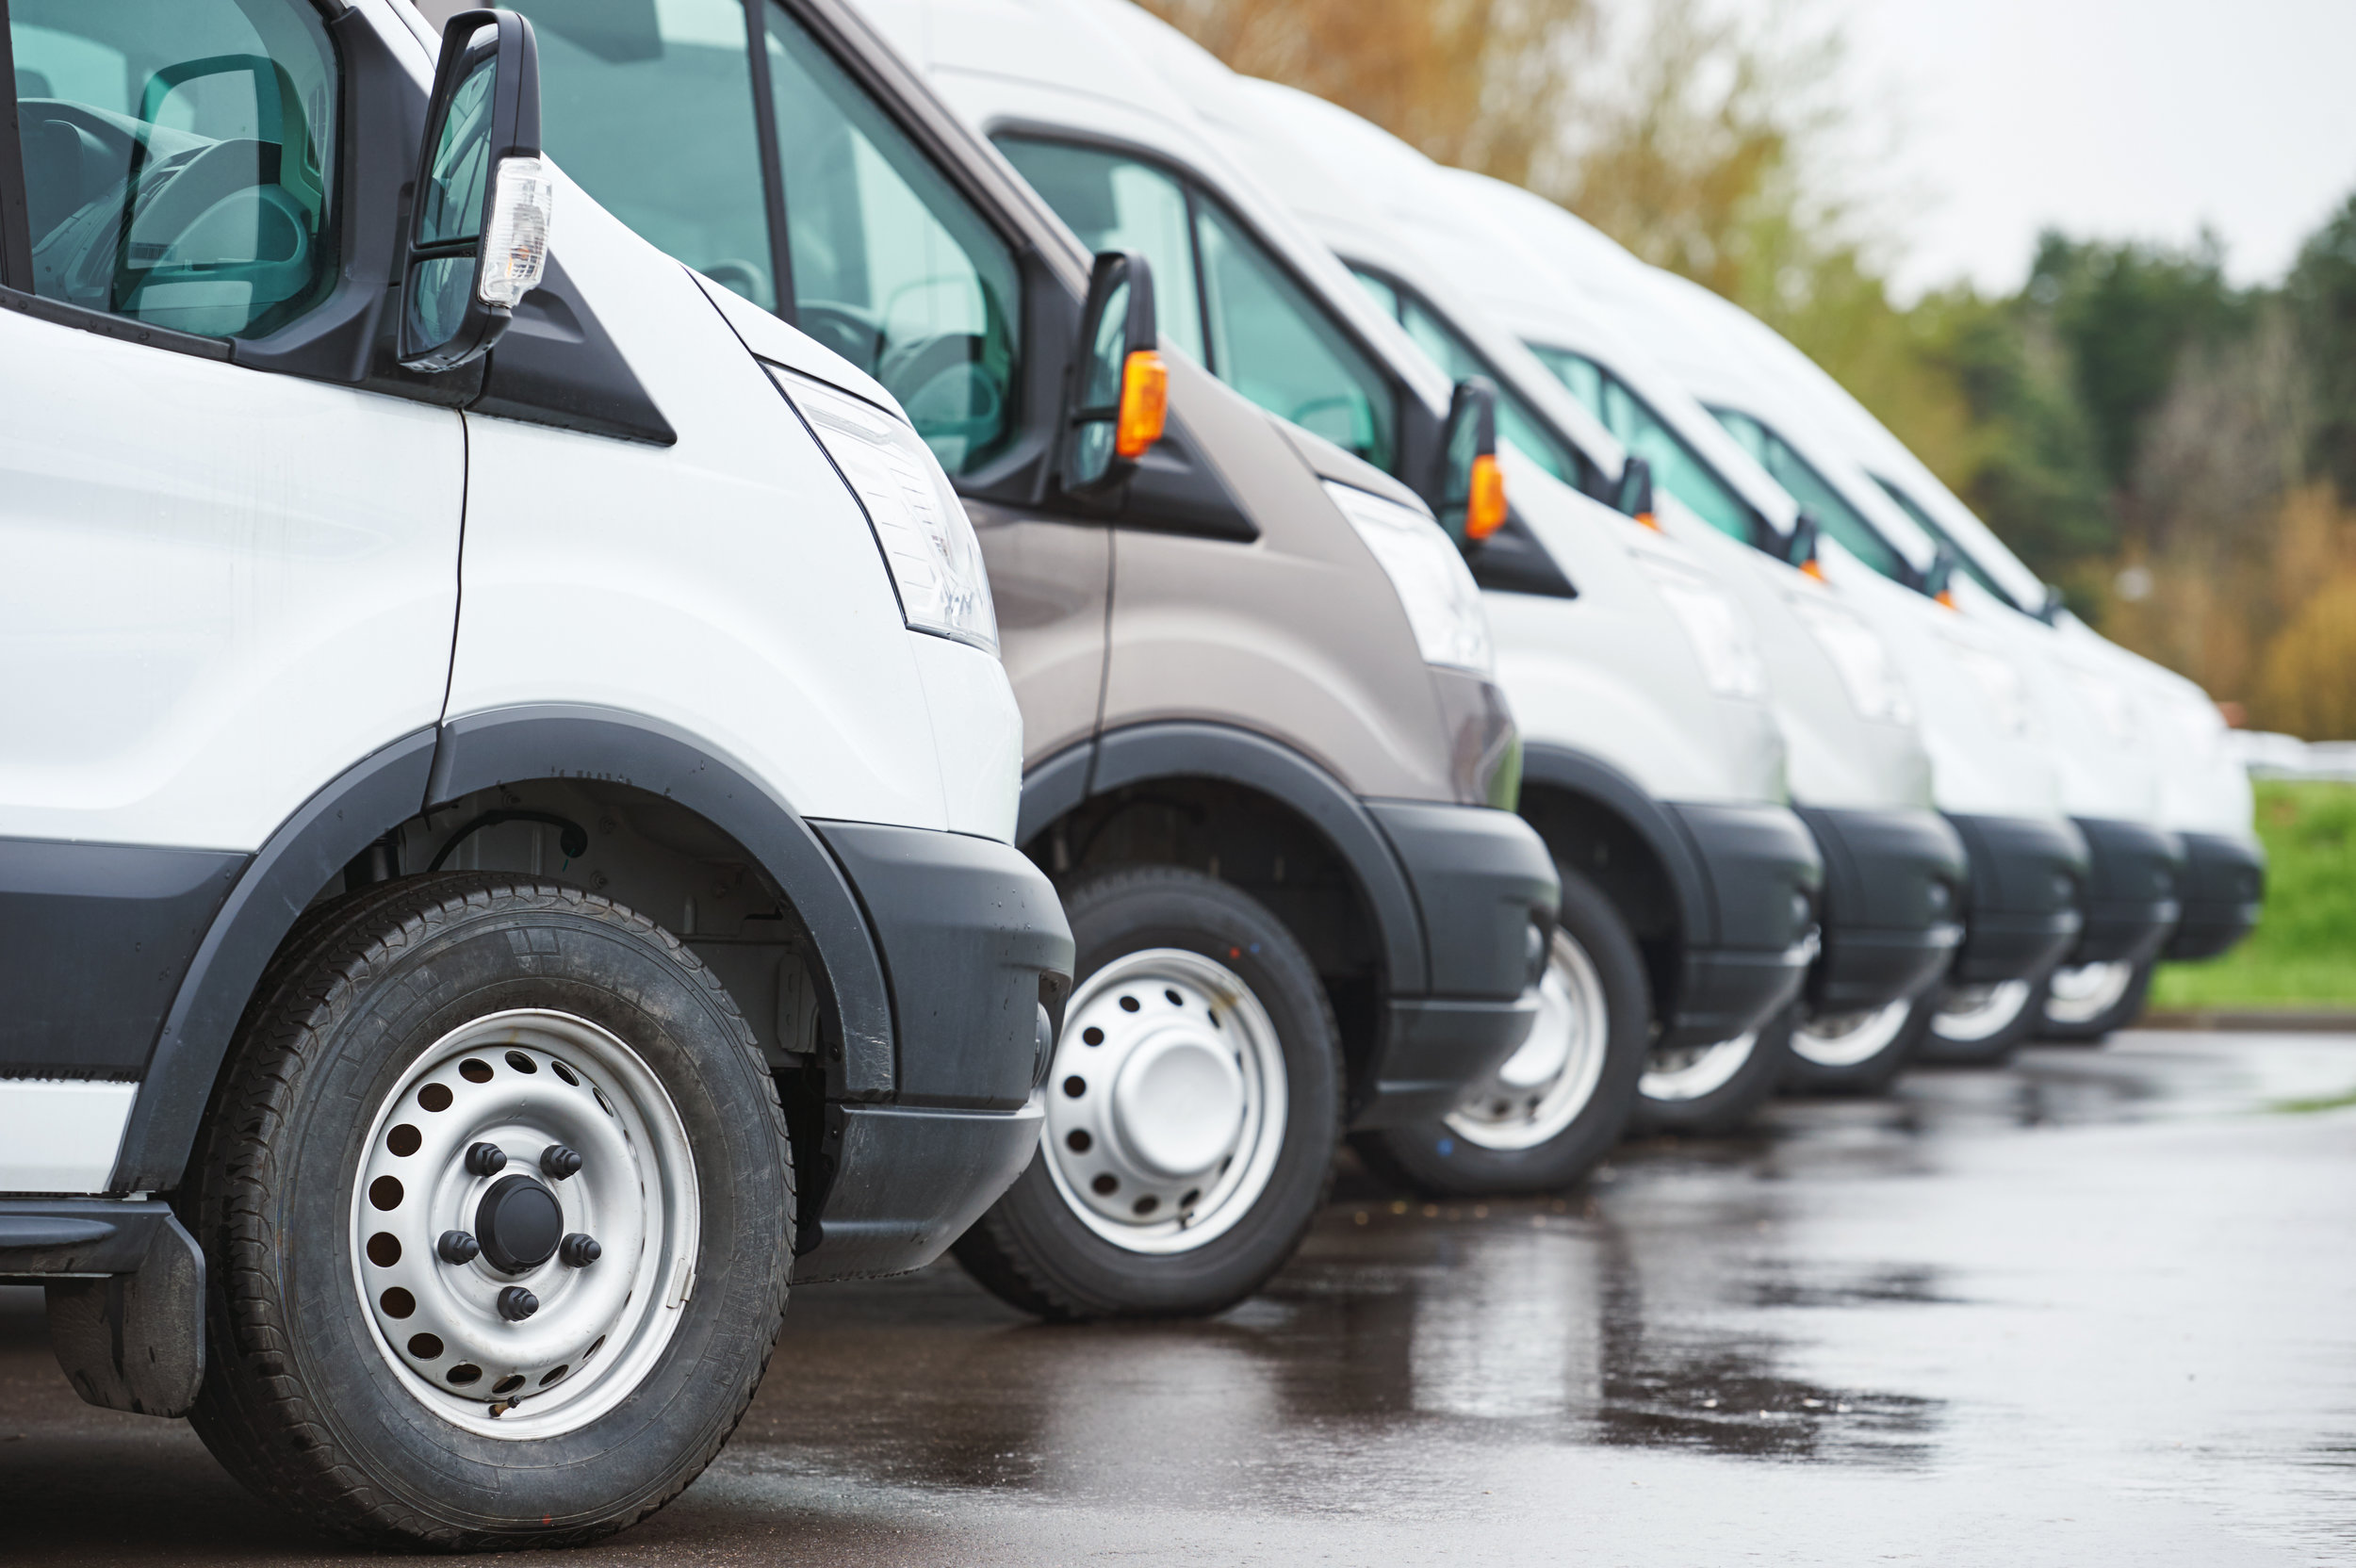 Business Auto Insurance - Insure your company vehicles with the right policy